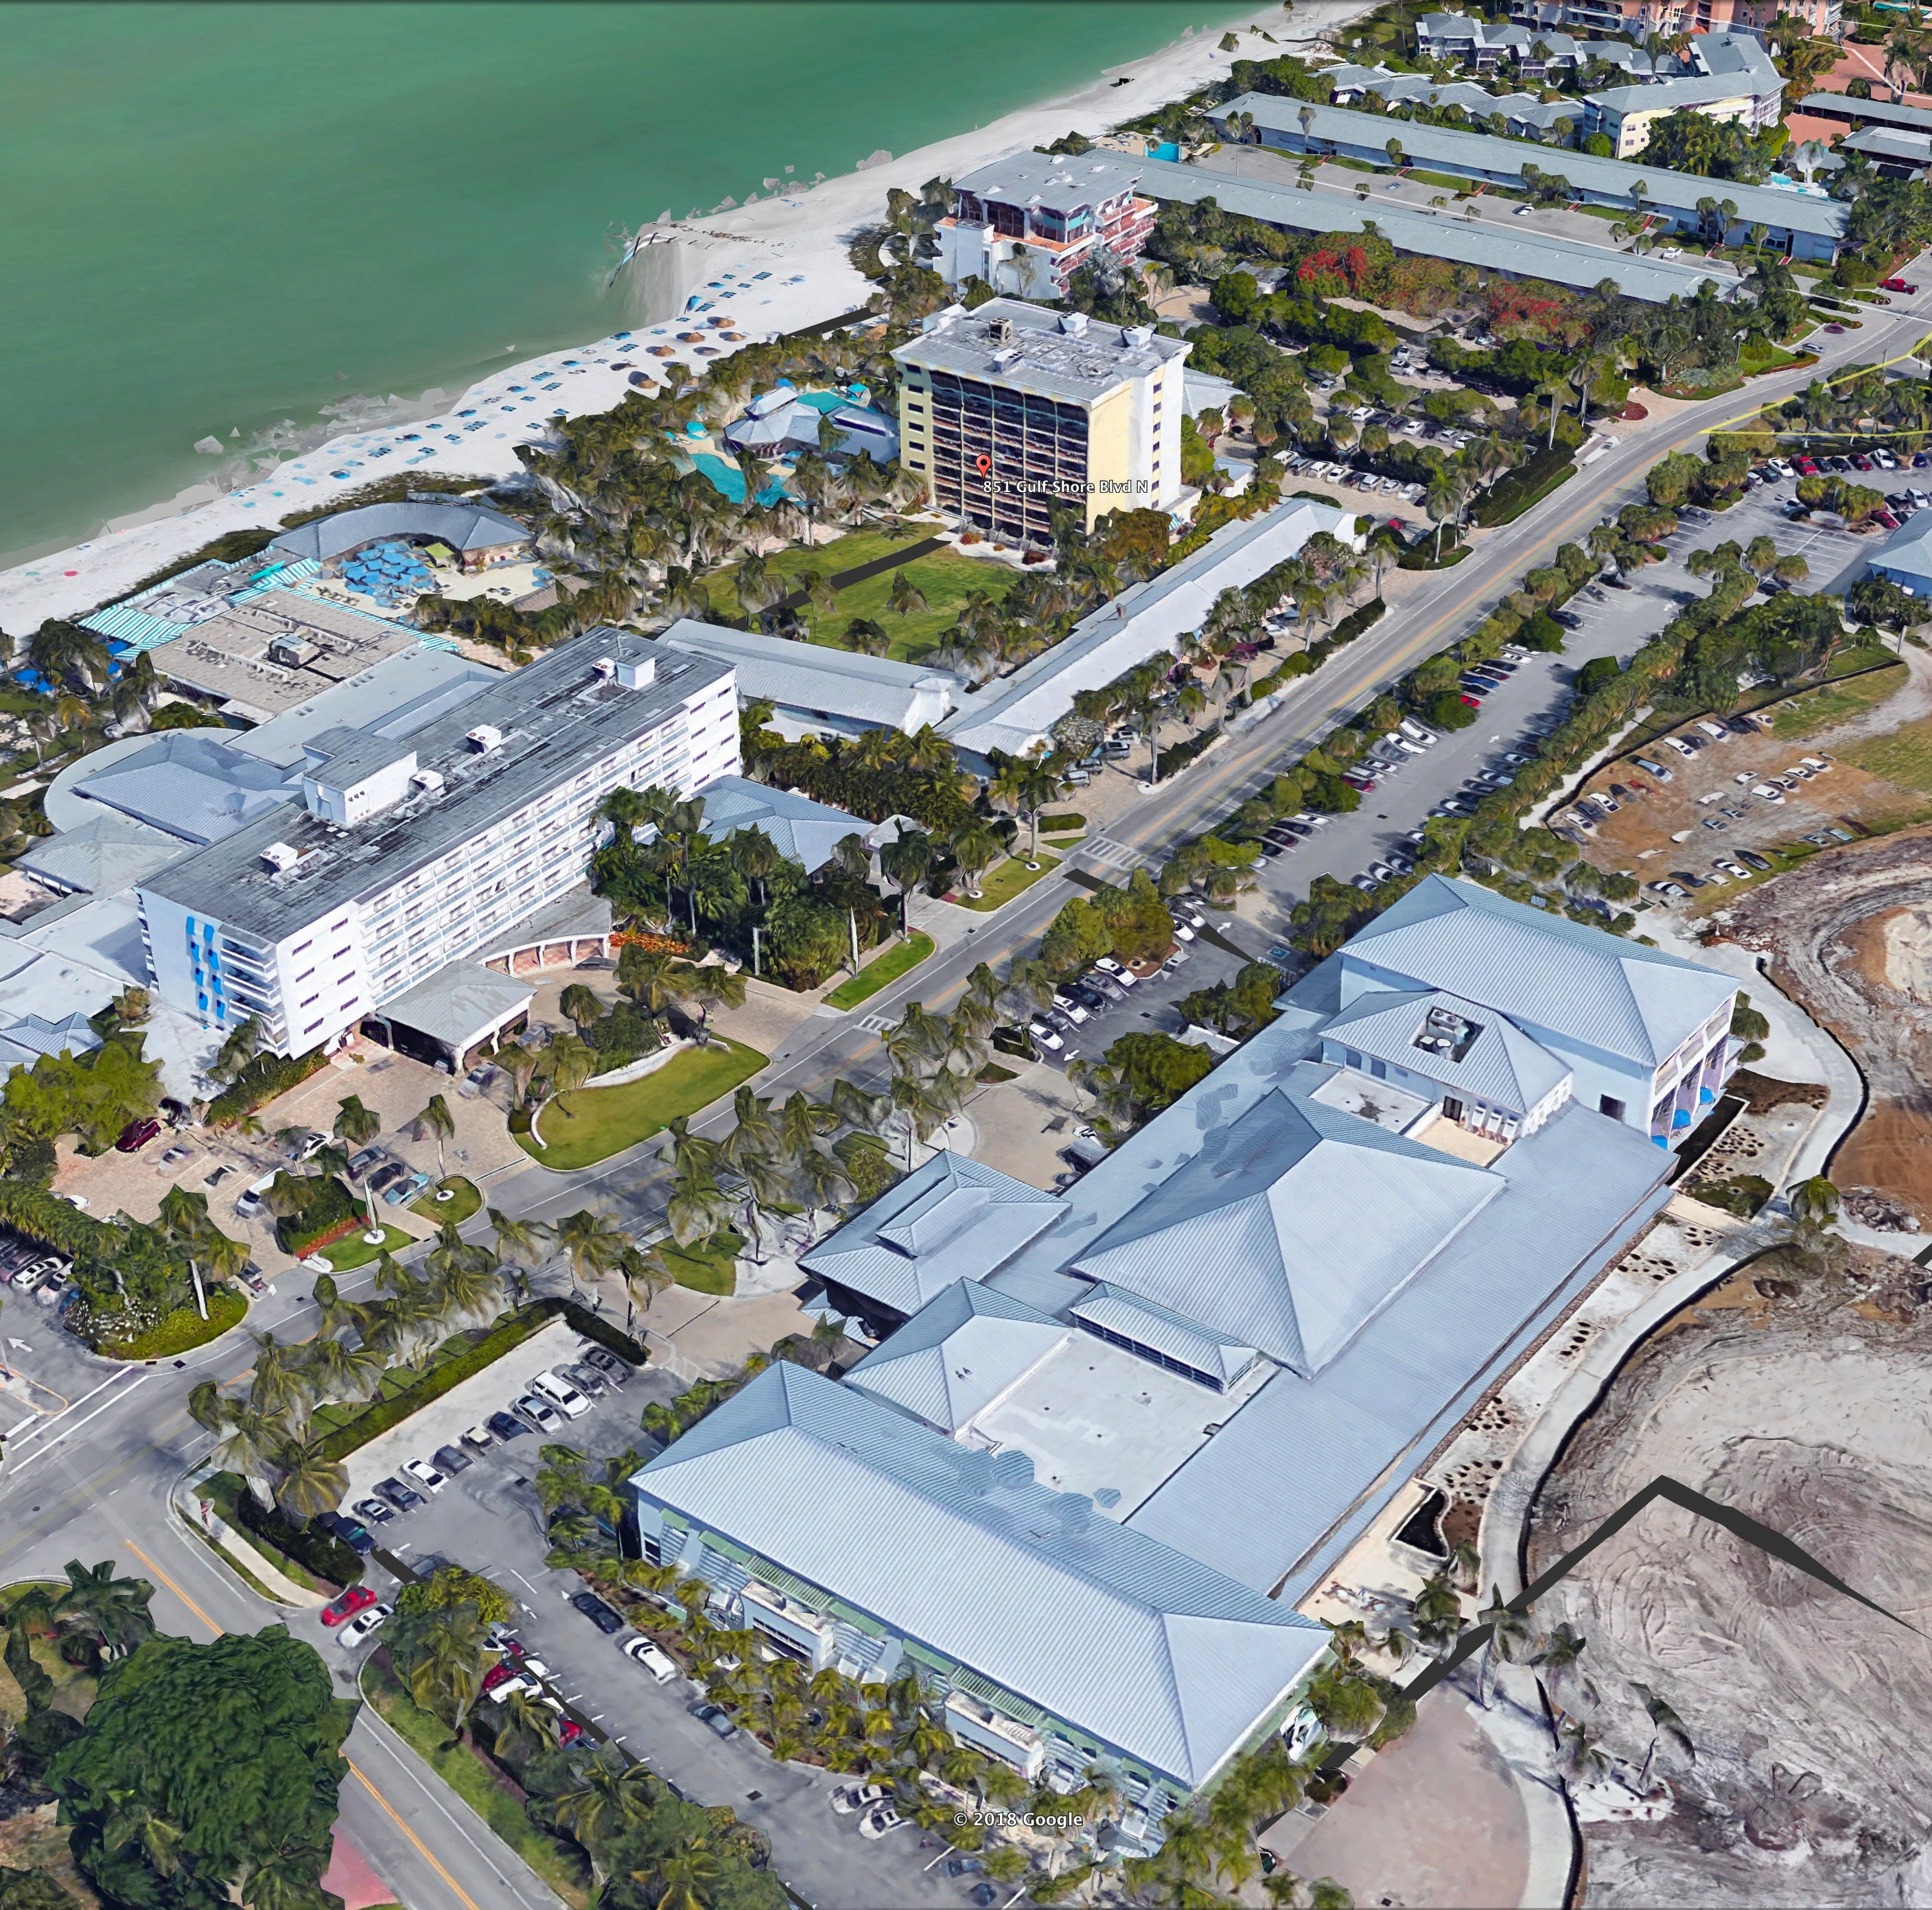 What changes has company made to Naples Beach Hotel redevelopment plan?